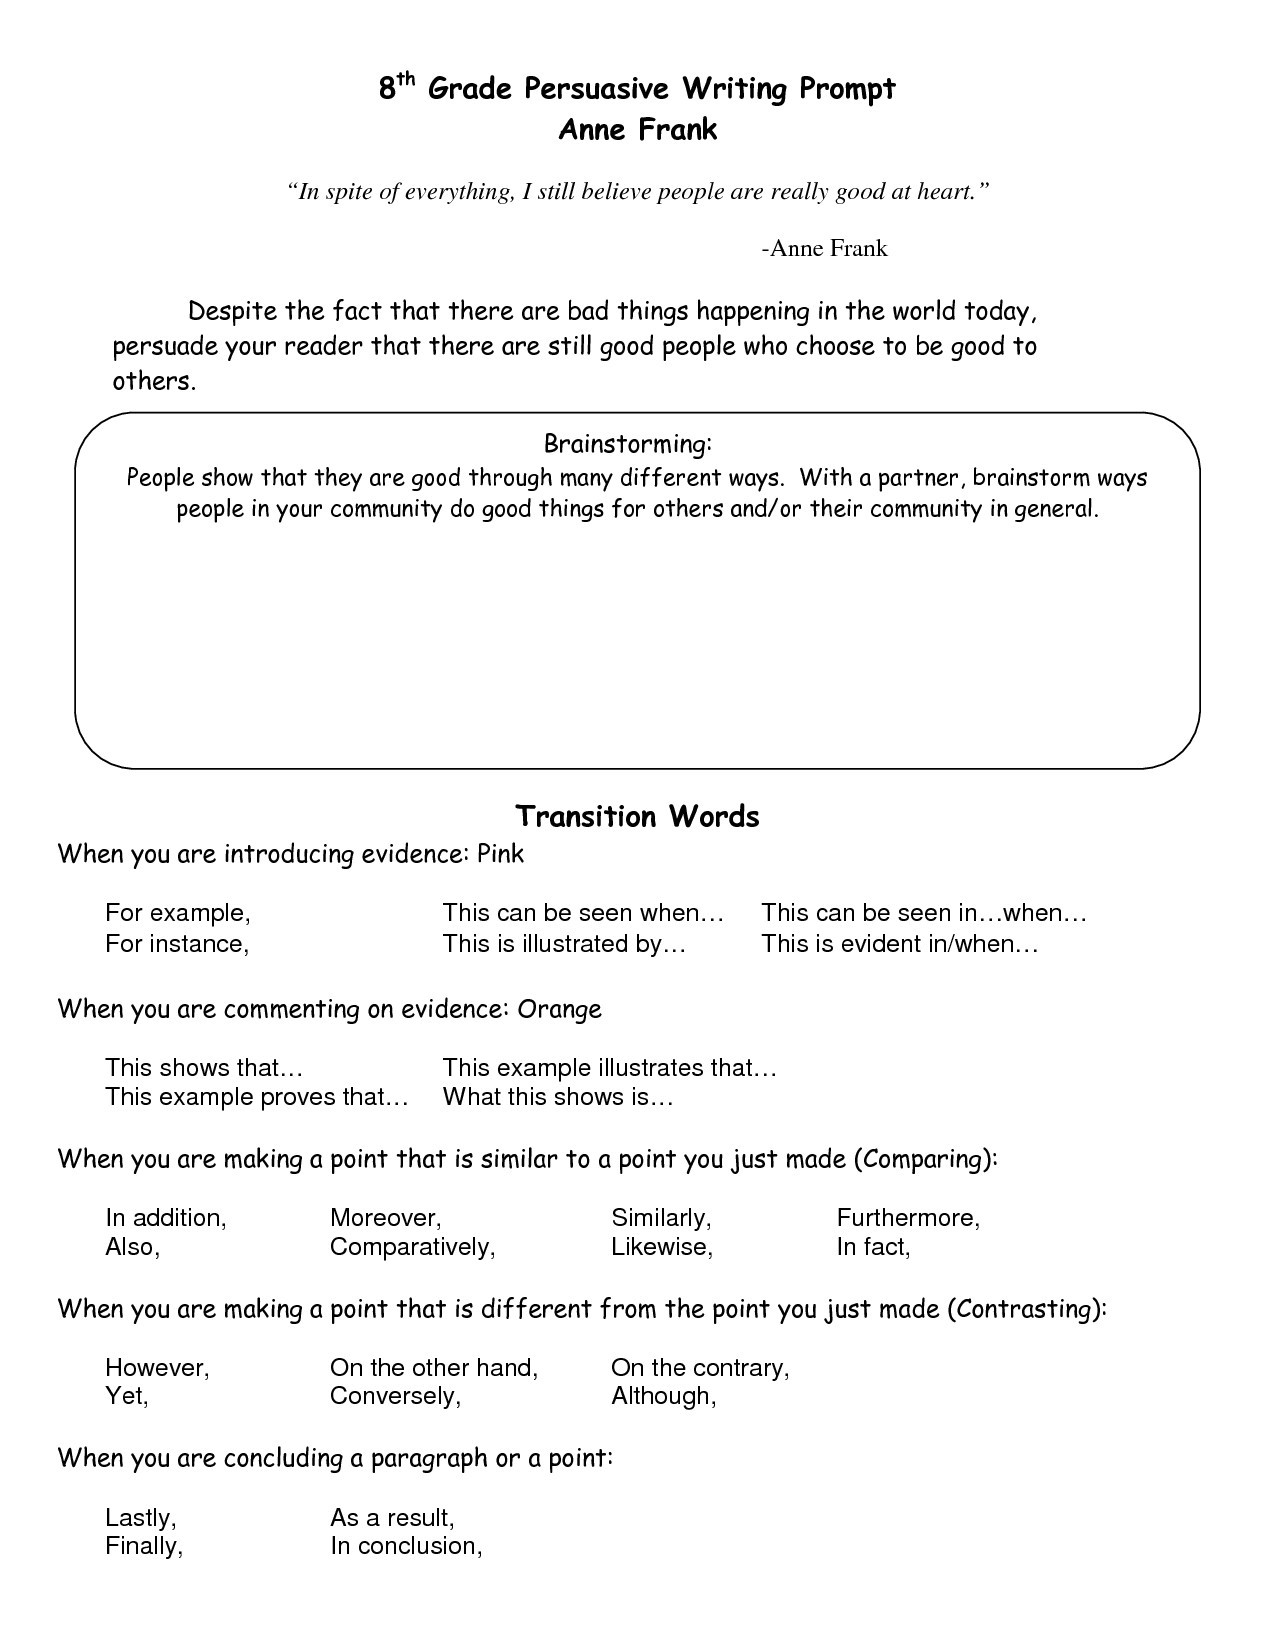 Transition Words Worksheets 4th Grade Transition Words Worksheet